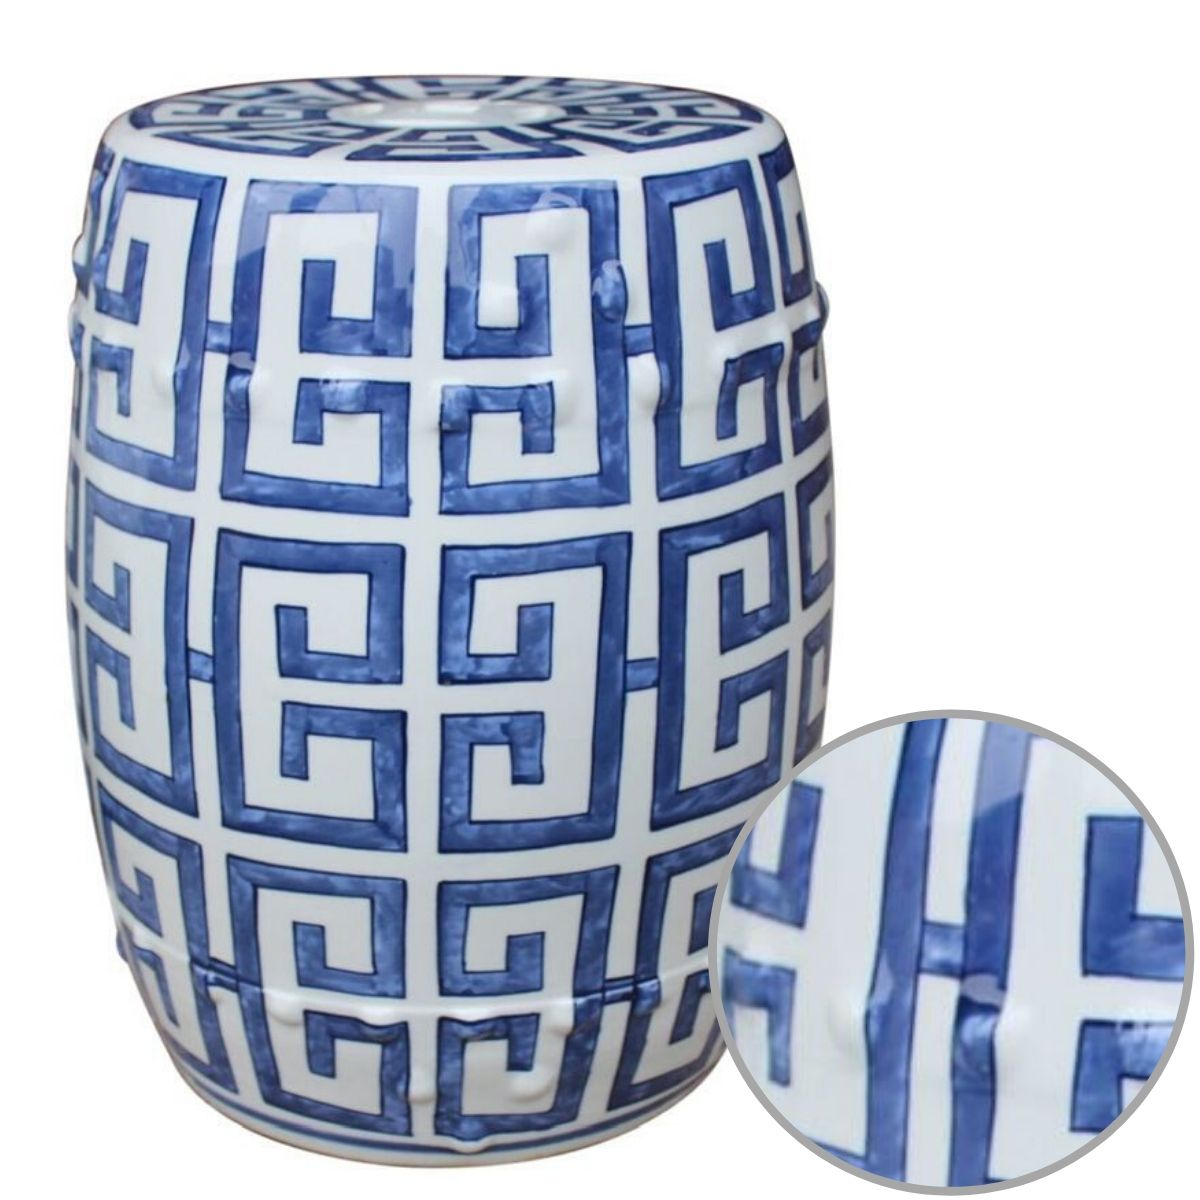 greek-key-porcelain-stool